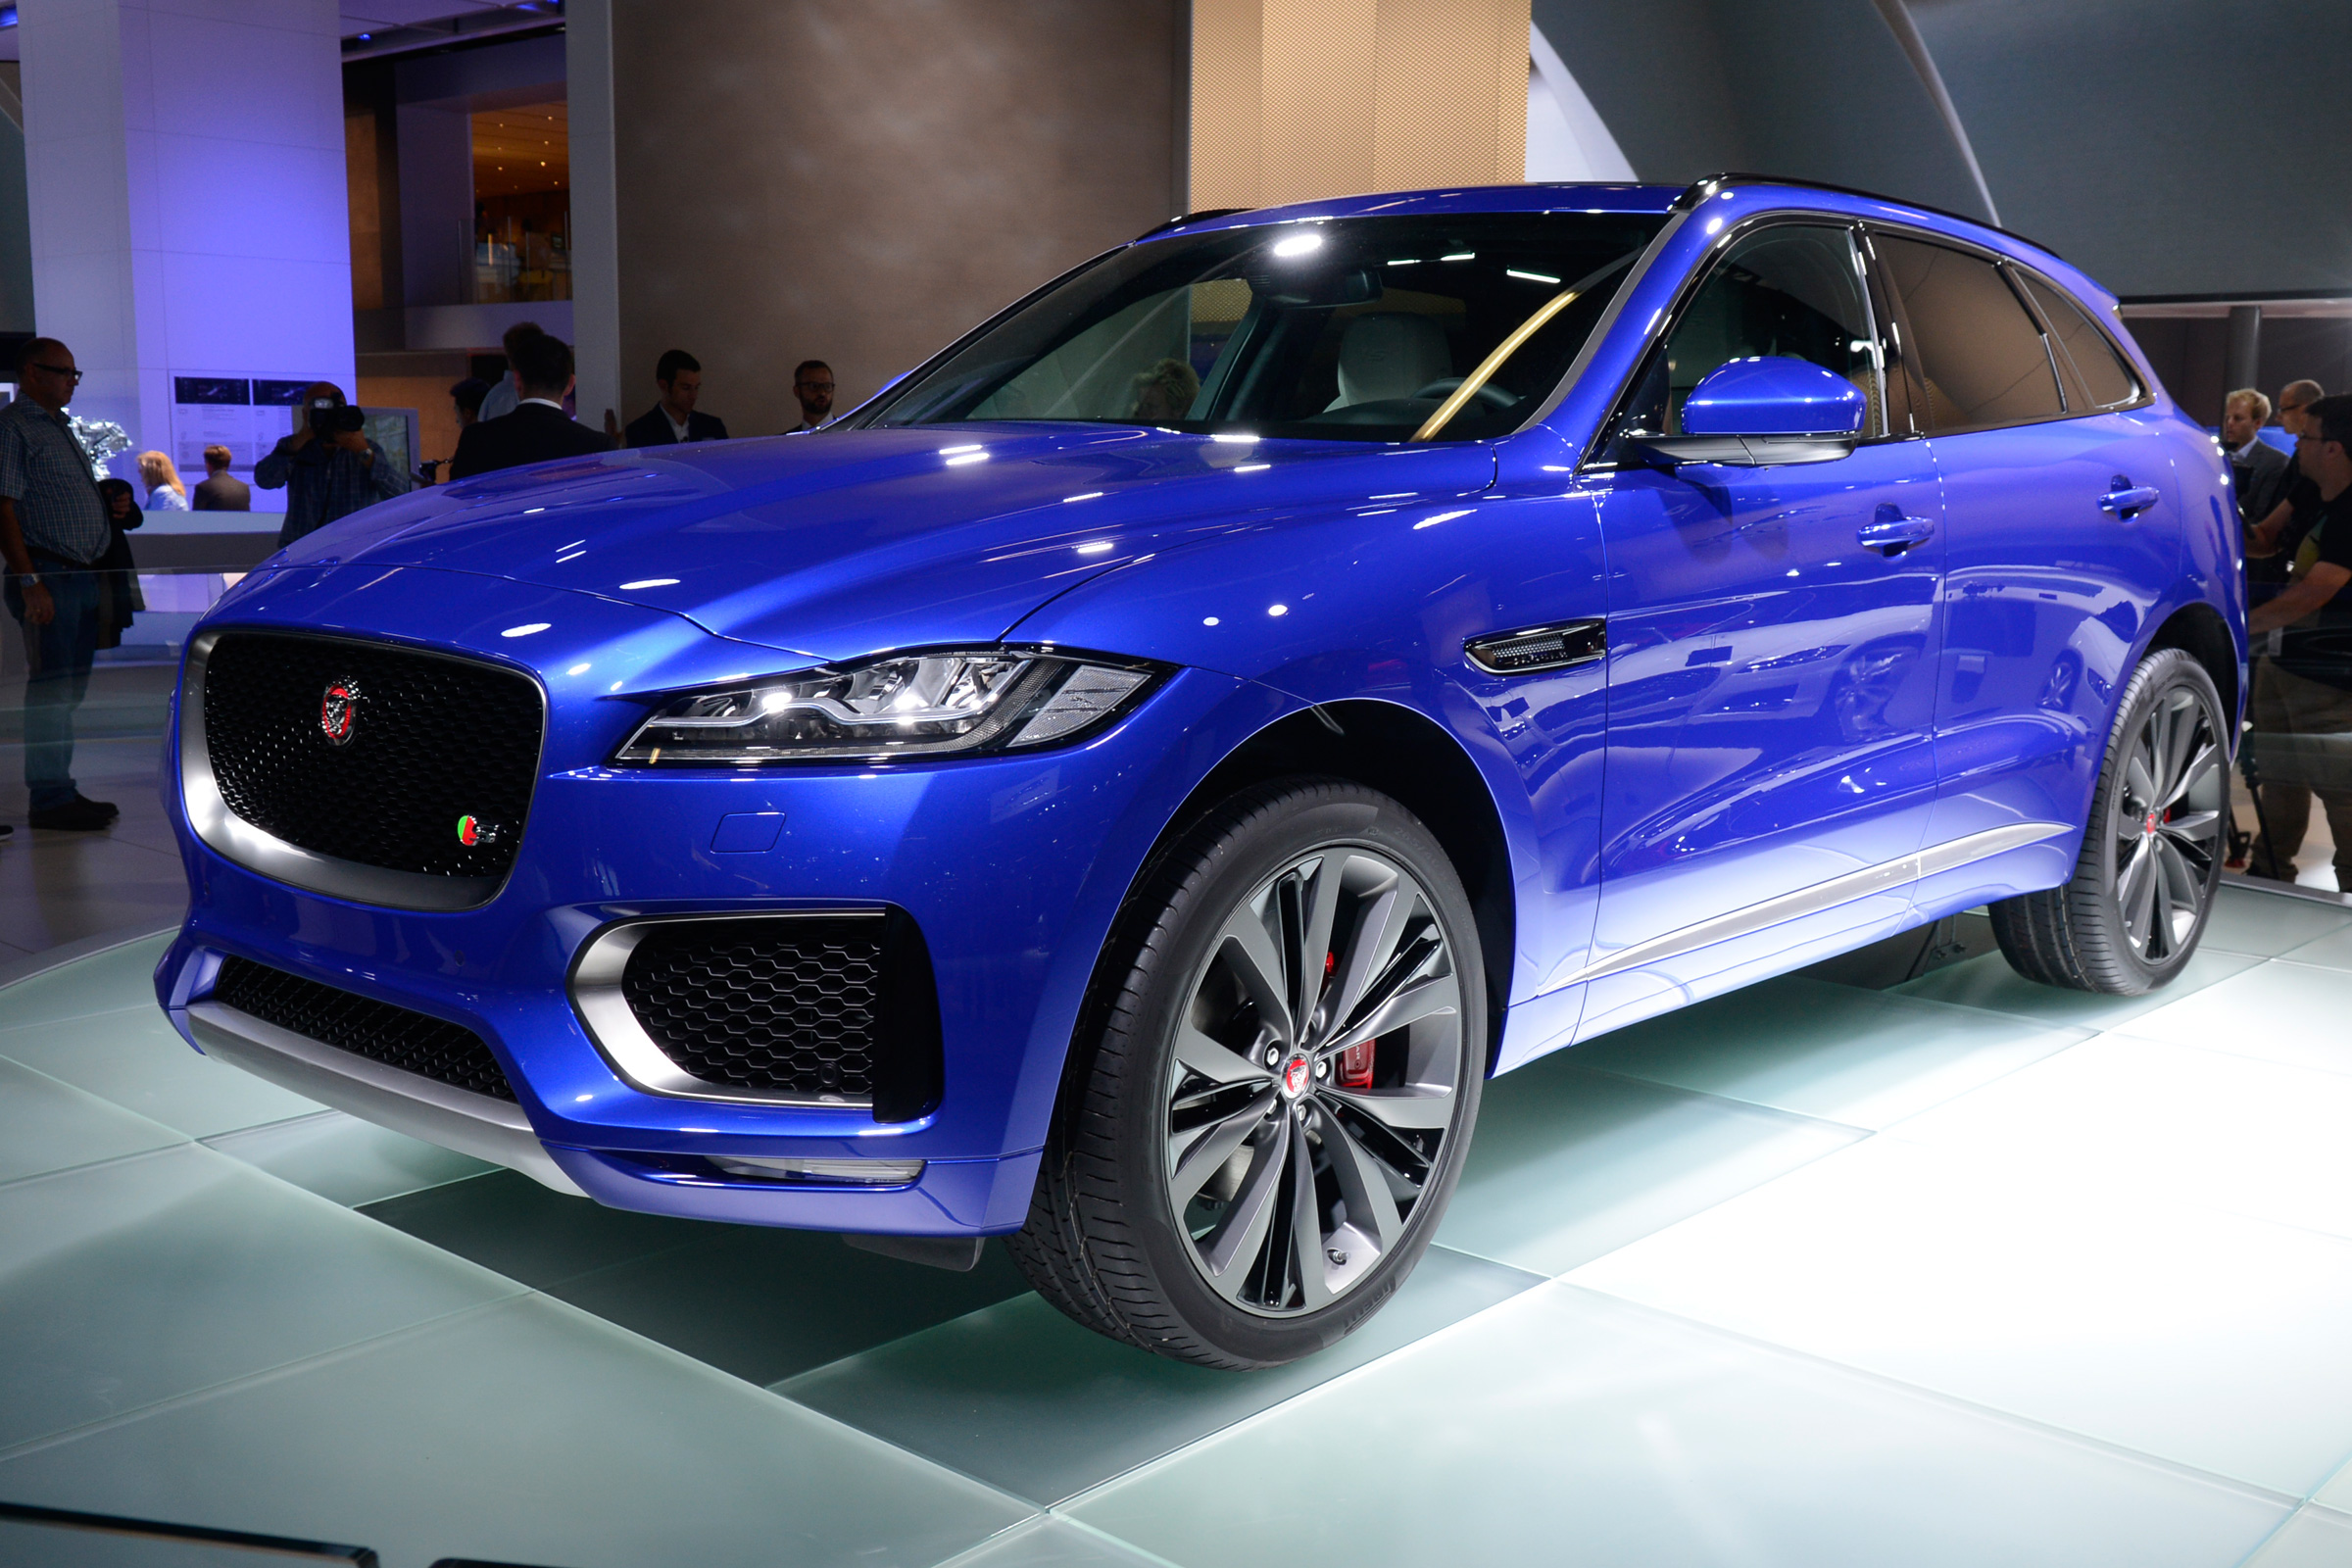 2016 Jaguar F-Pace SUV: prices, specs & release date | Carbuyer